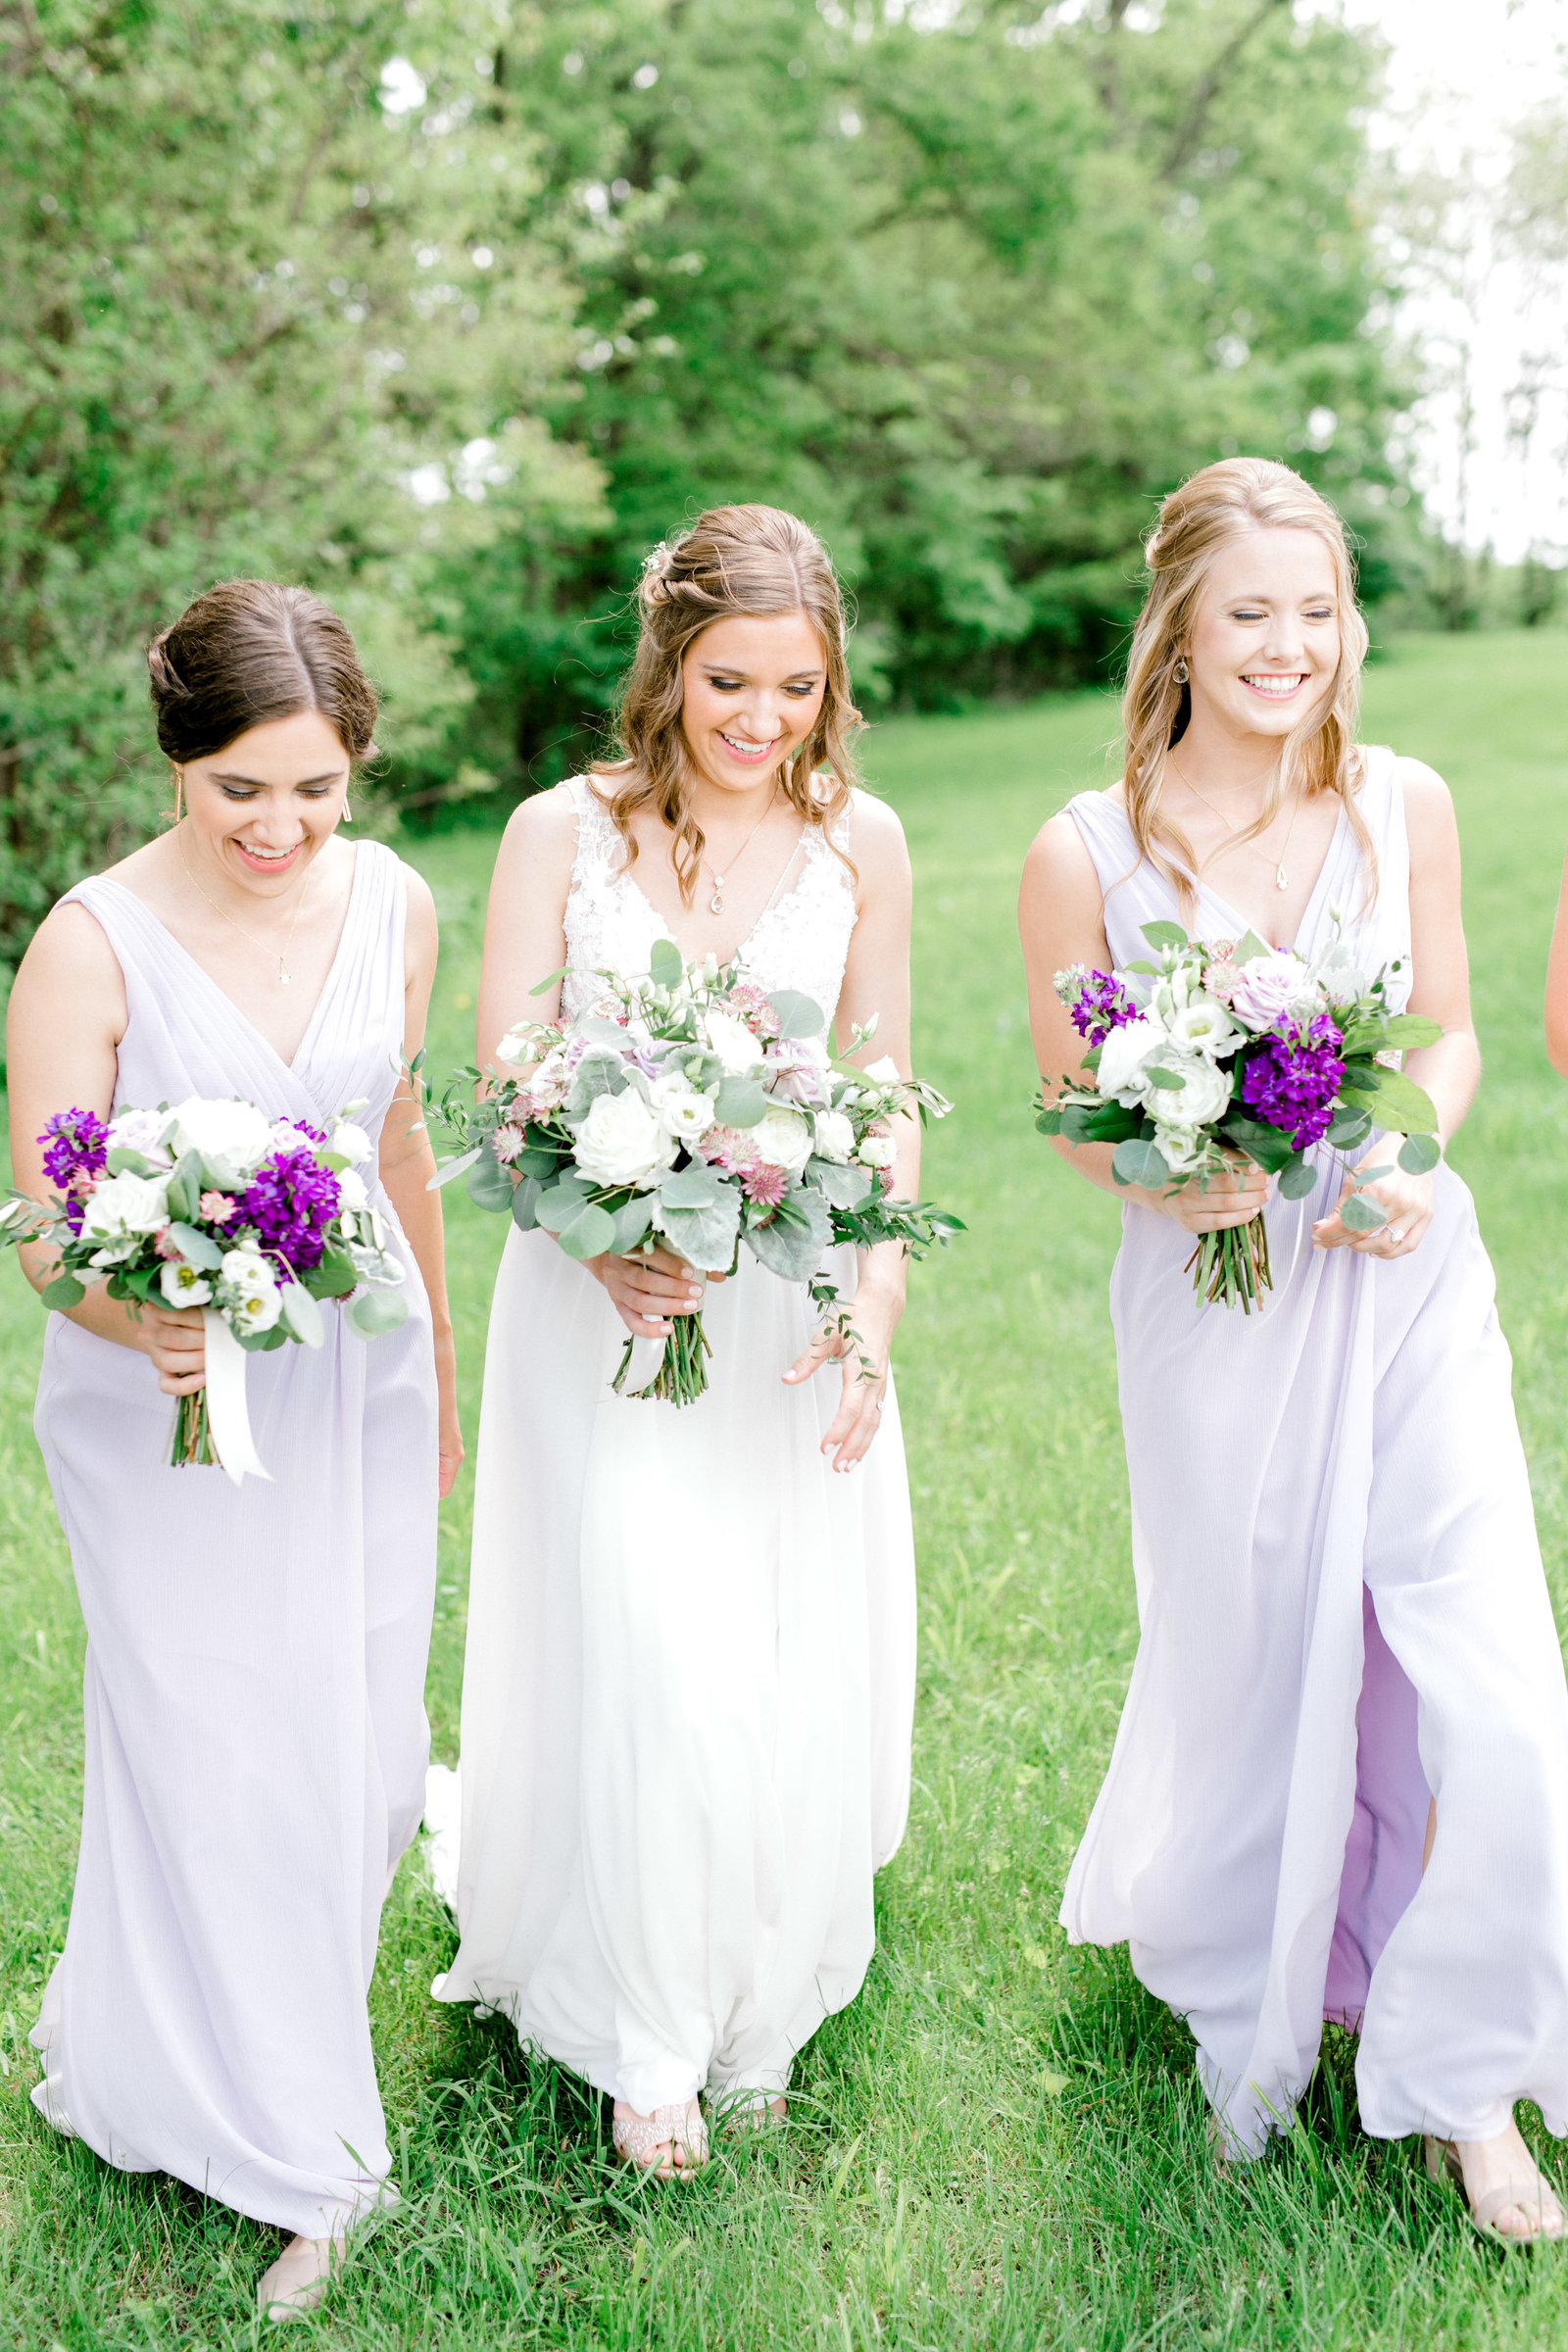 St-francis-of-assisi-west-des-moines-summer-wedding-erica-blake-6715